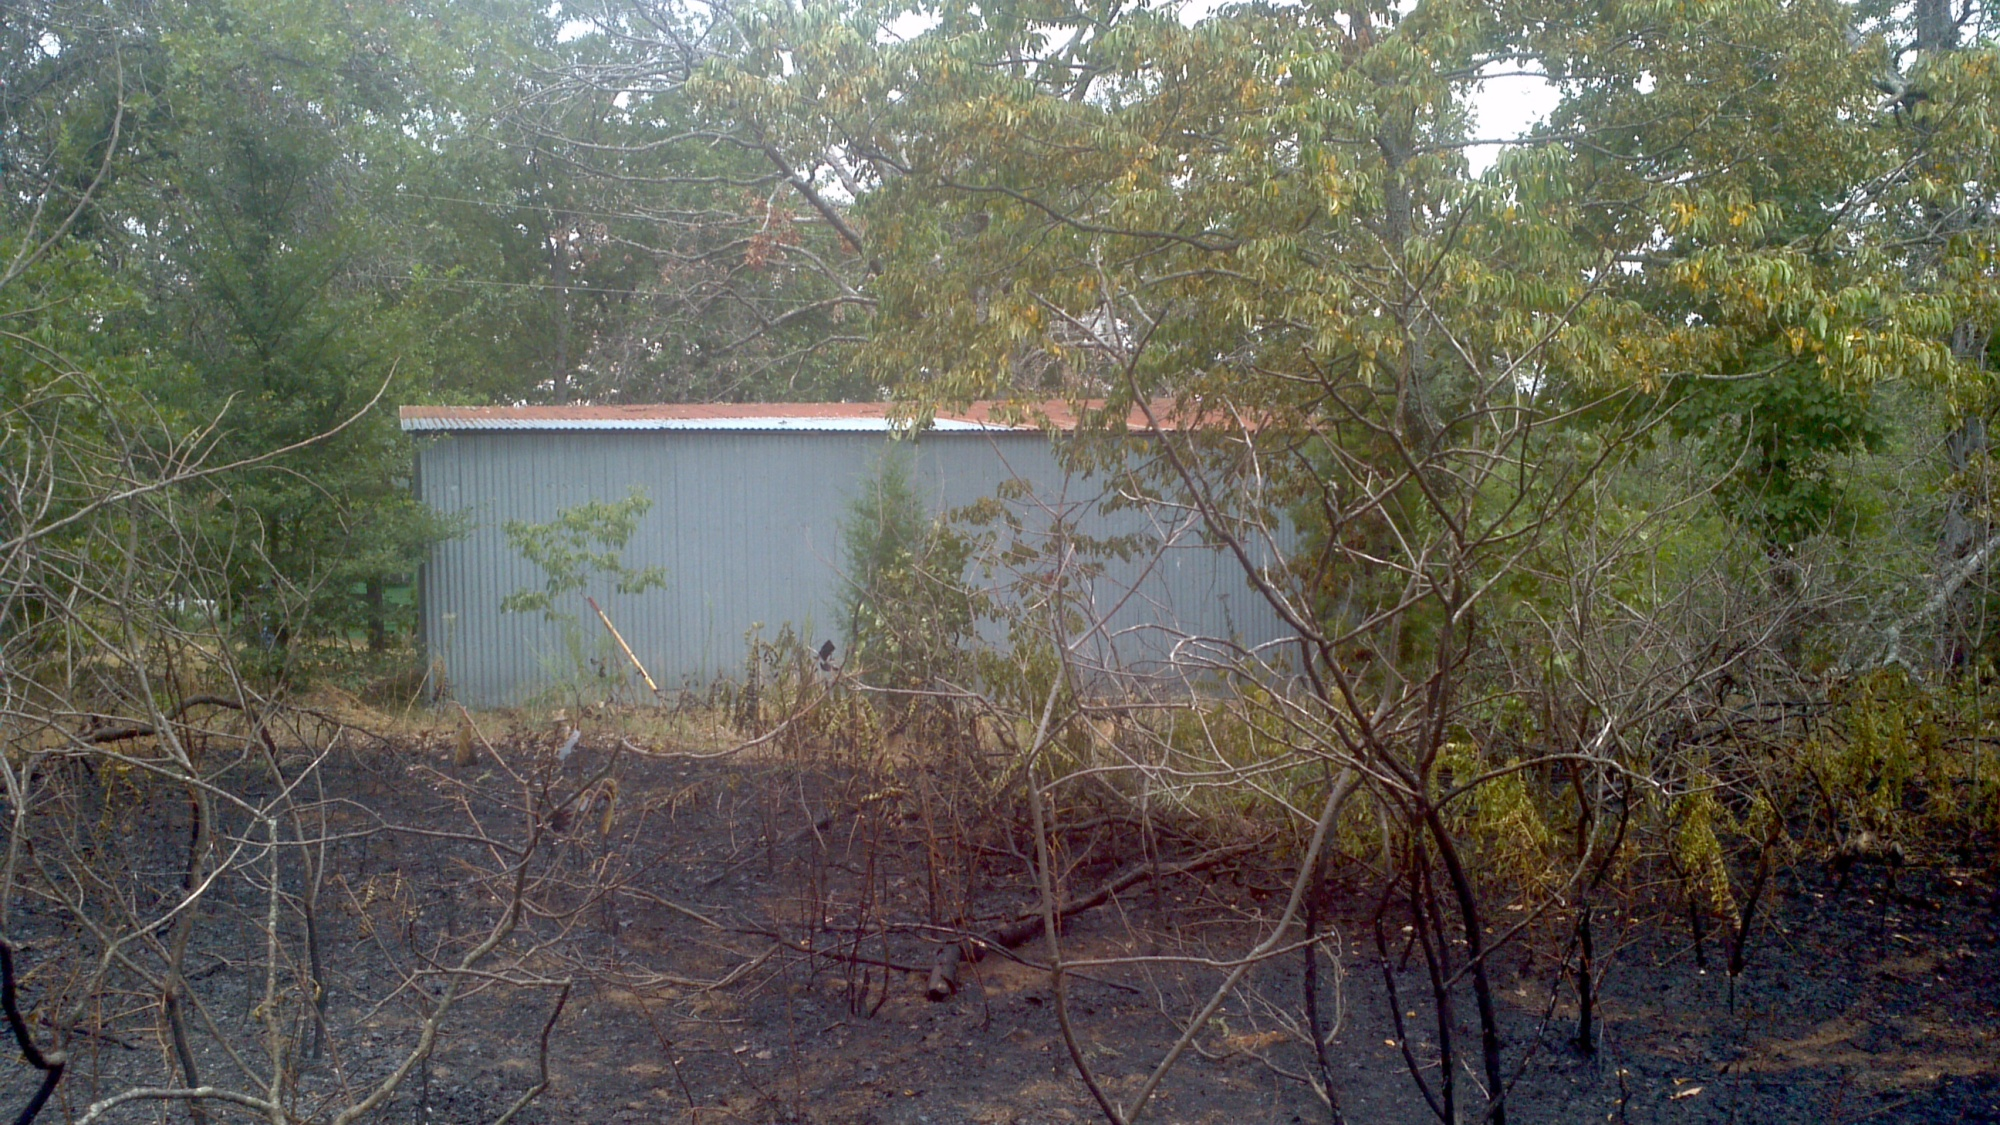 Burned grass from lightning strike near barn.